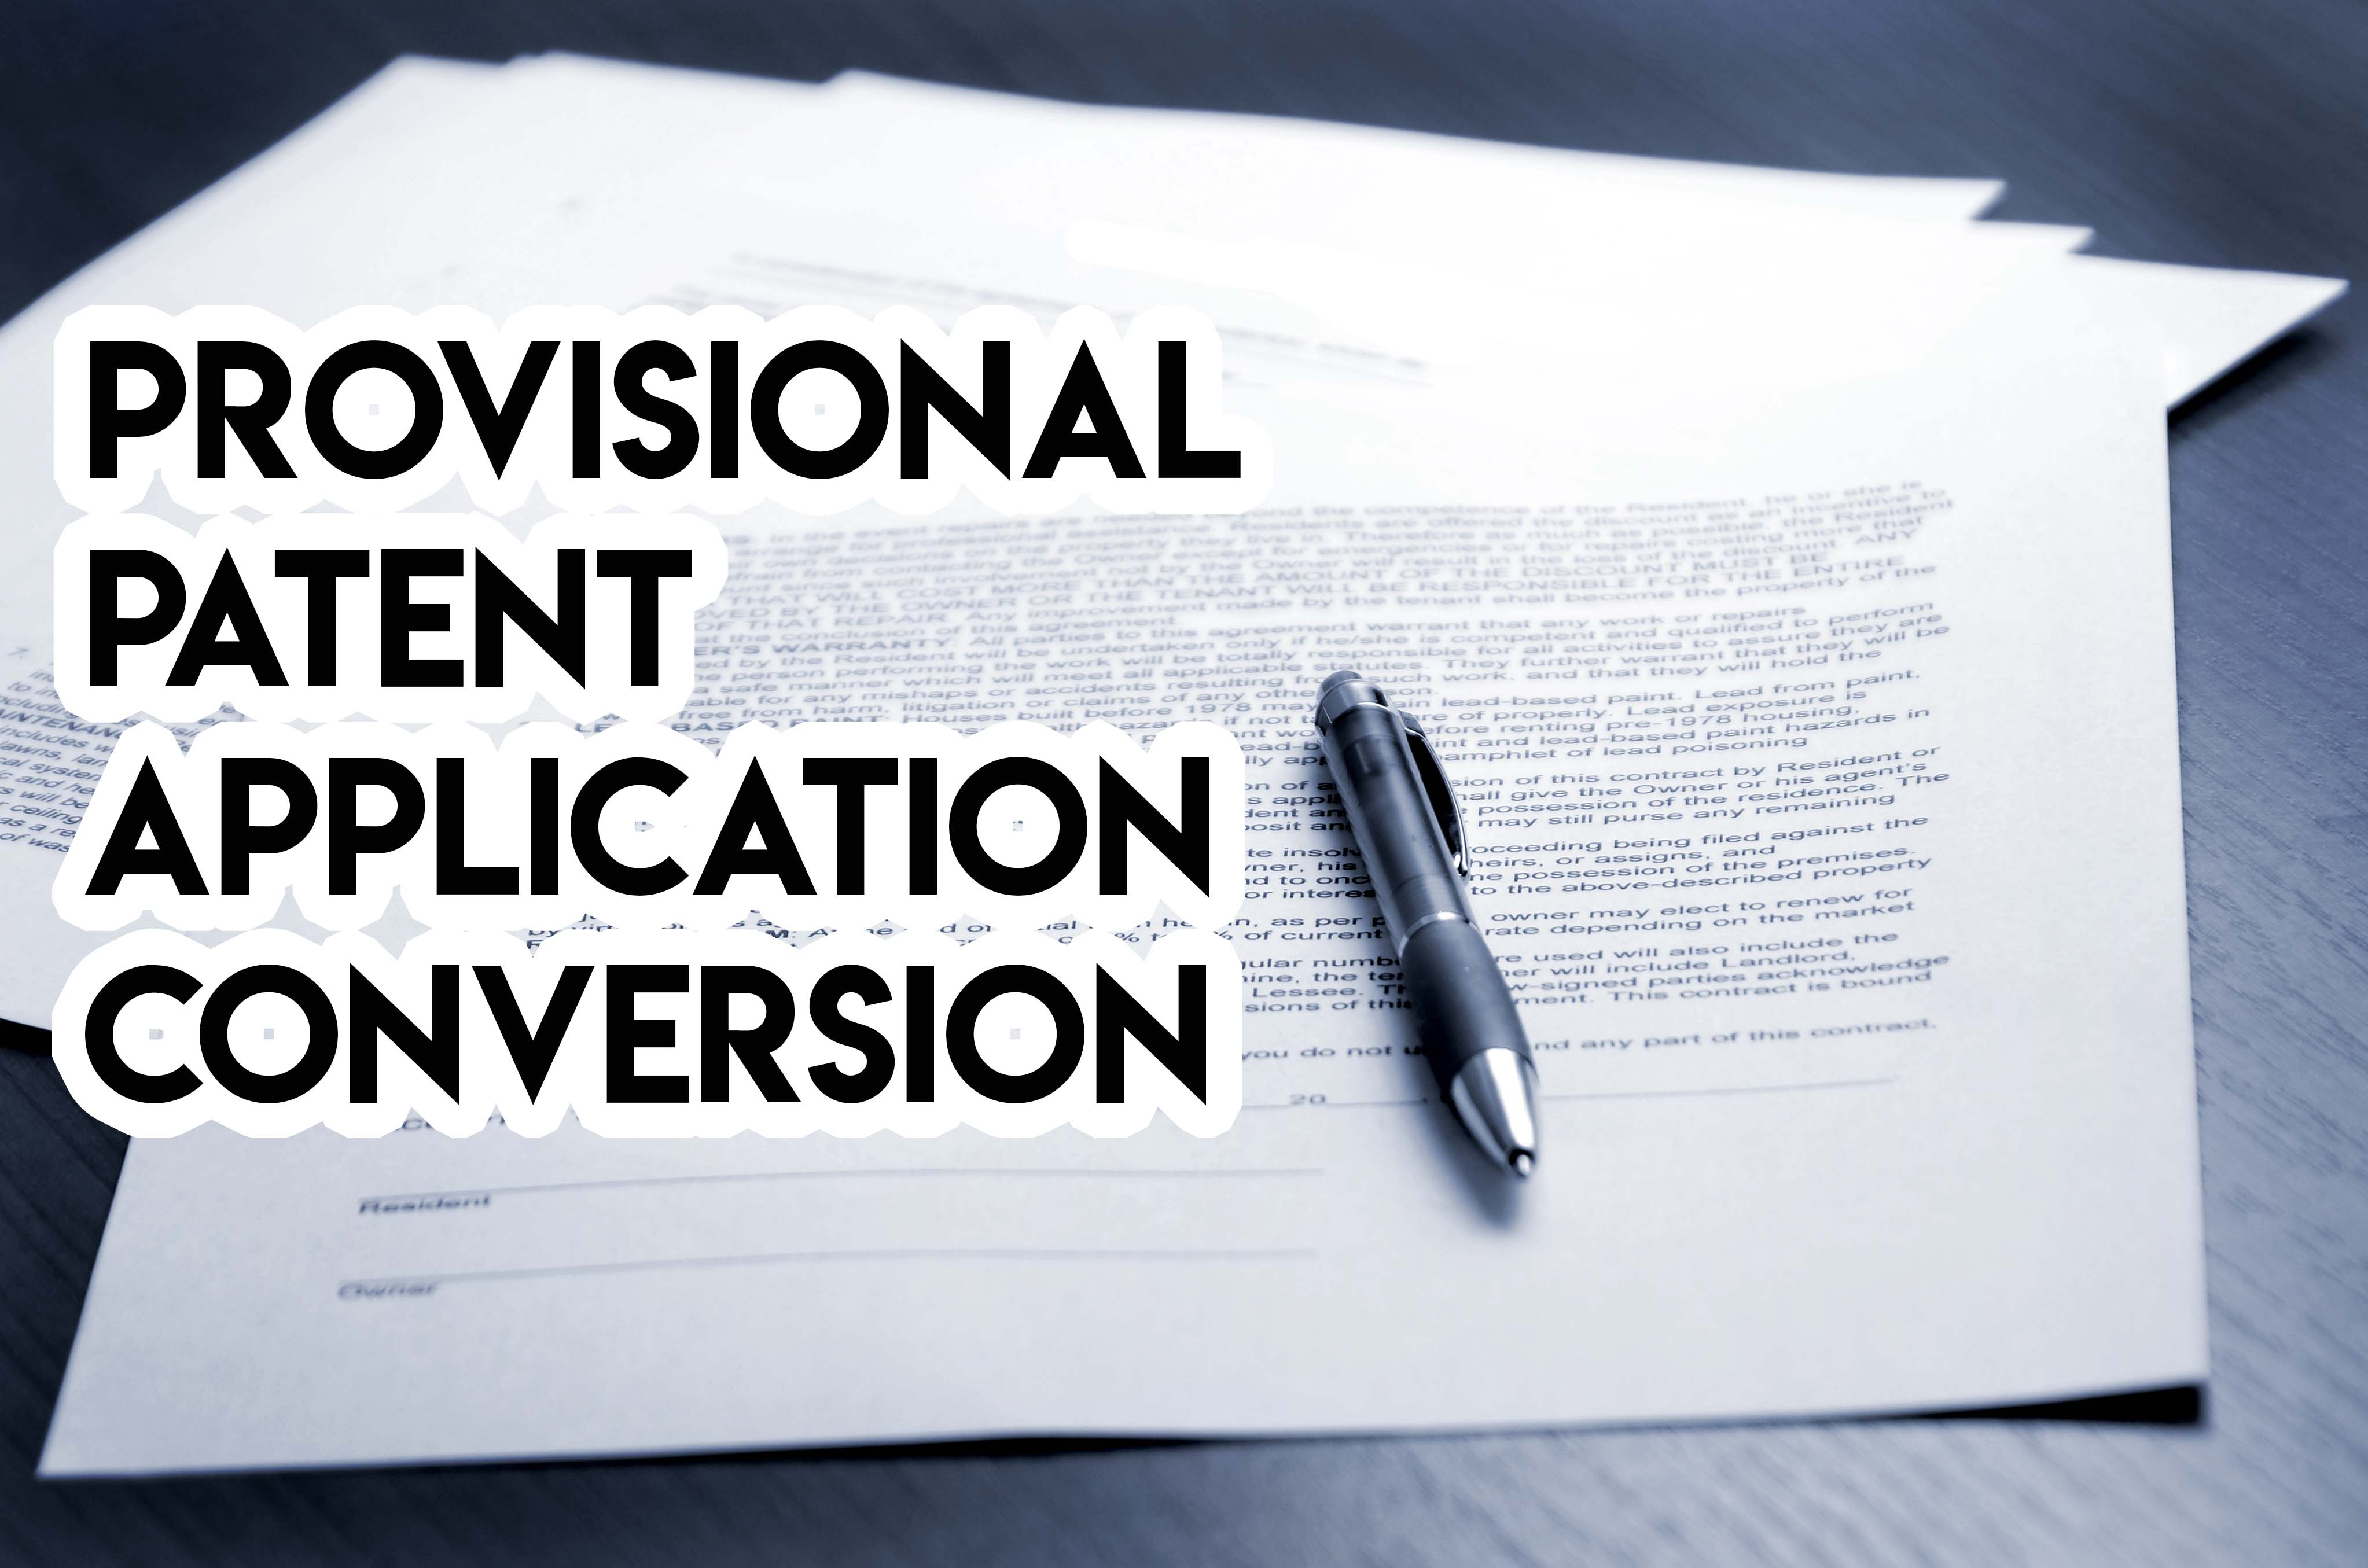 provisional patent application conversion